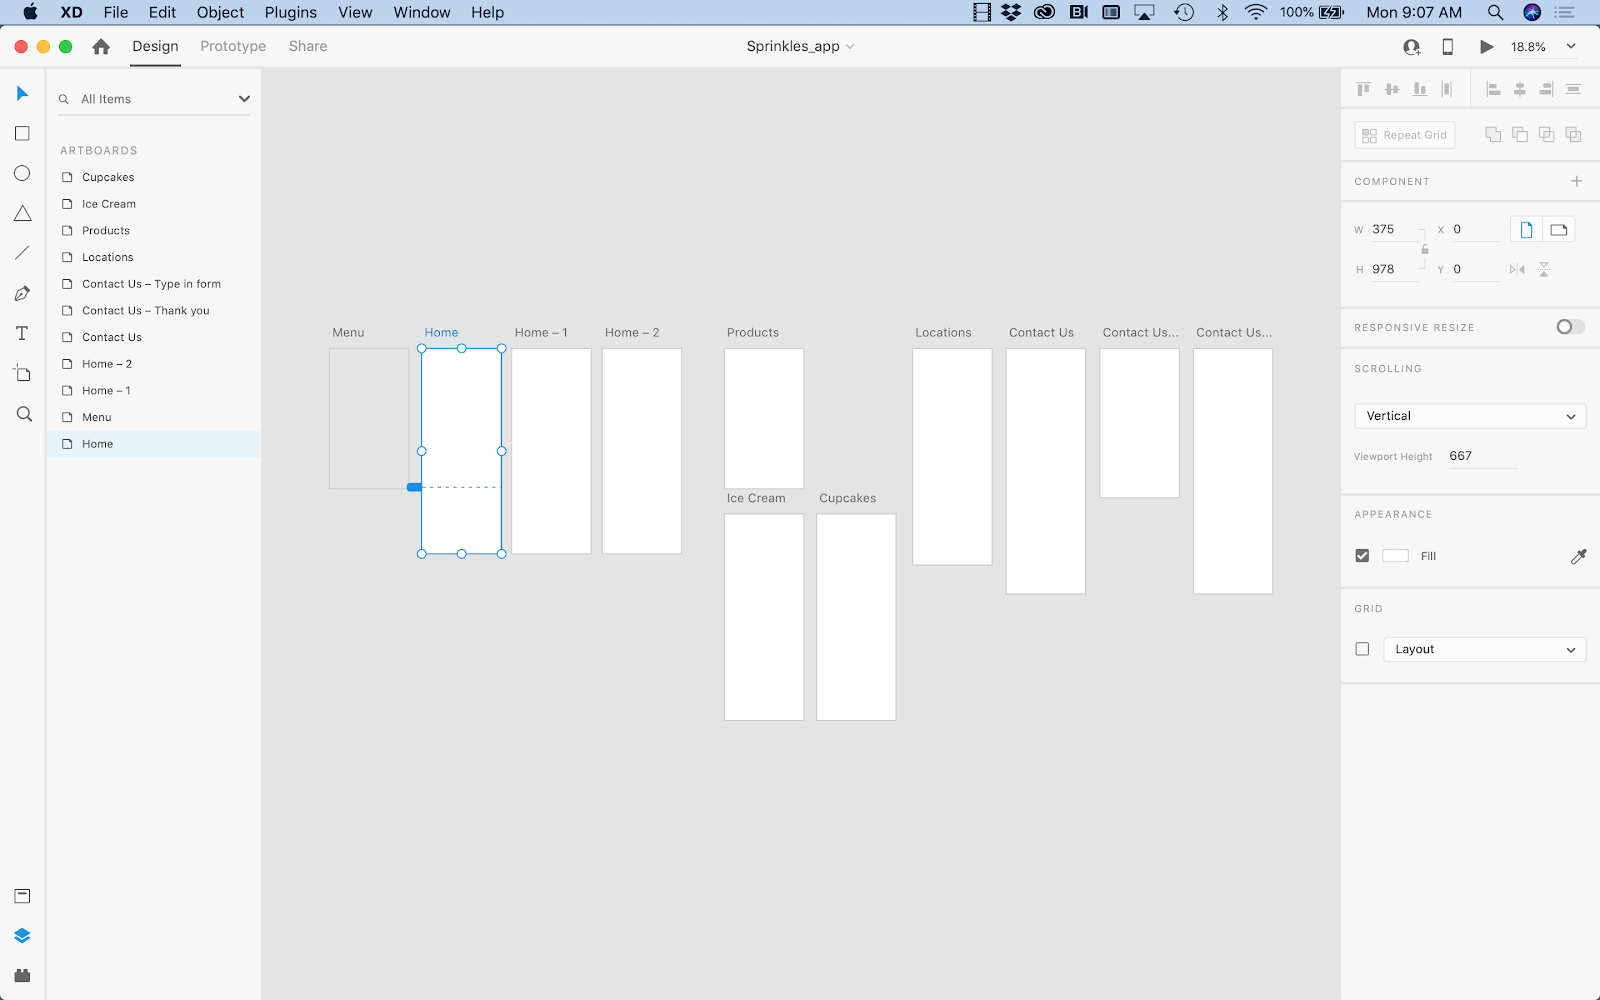 A series of blank wireframe artboards representing key screens to be included in a mobile app.